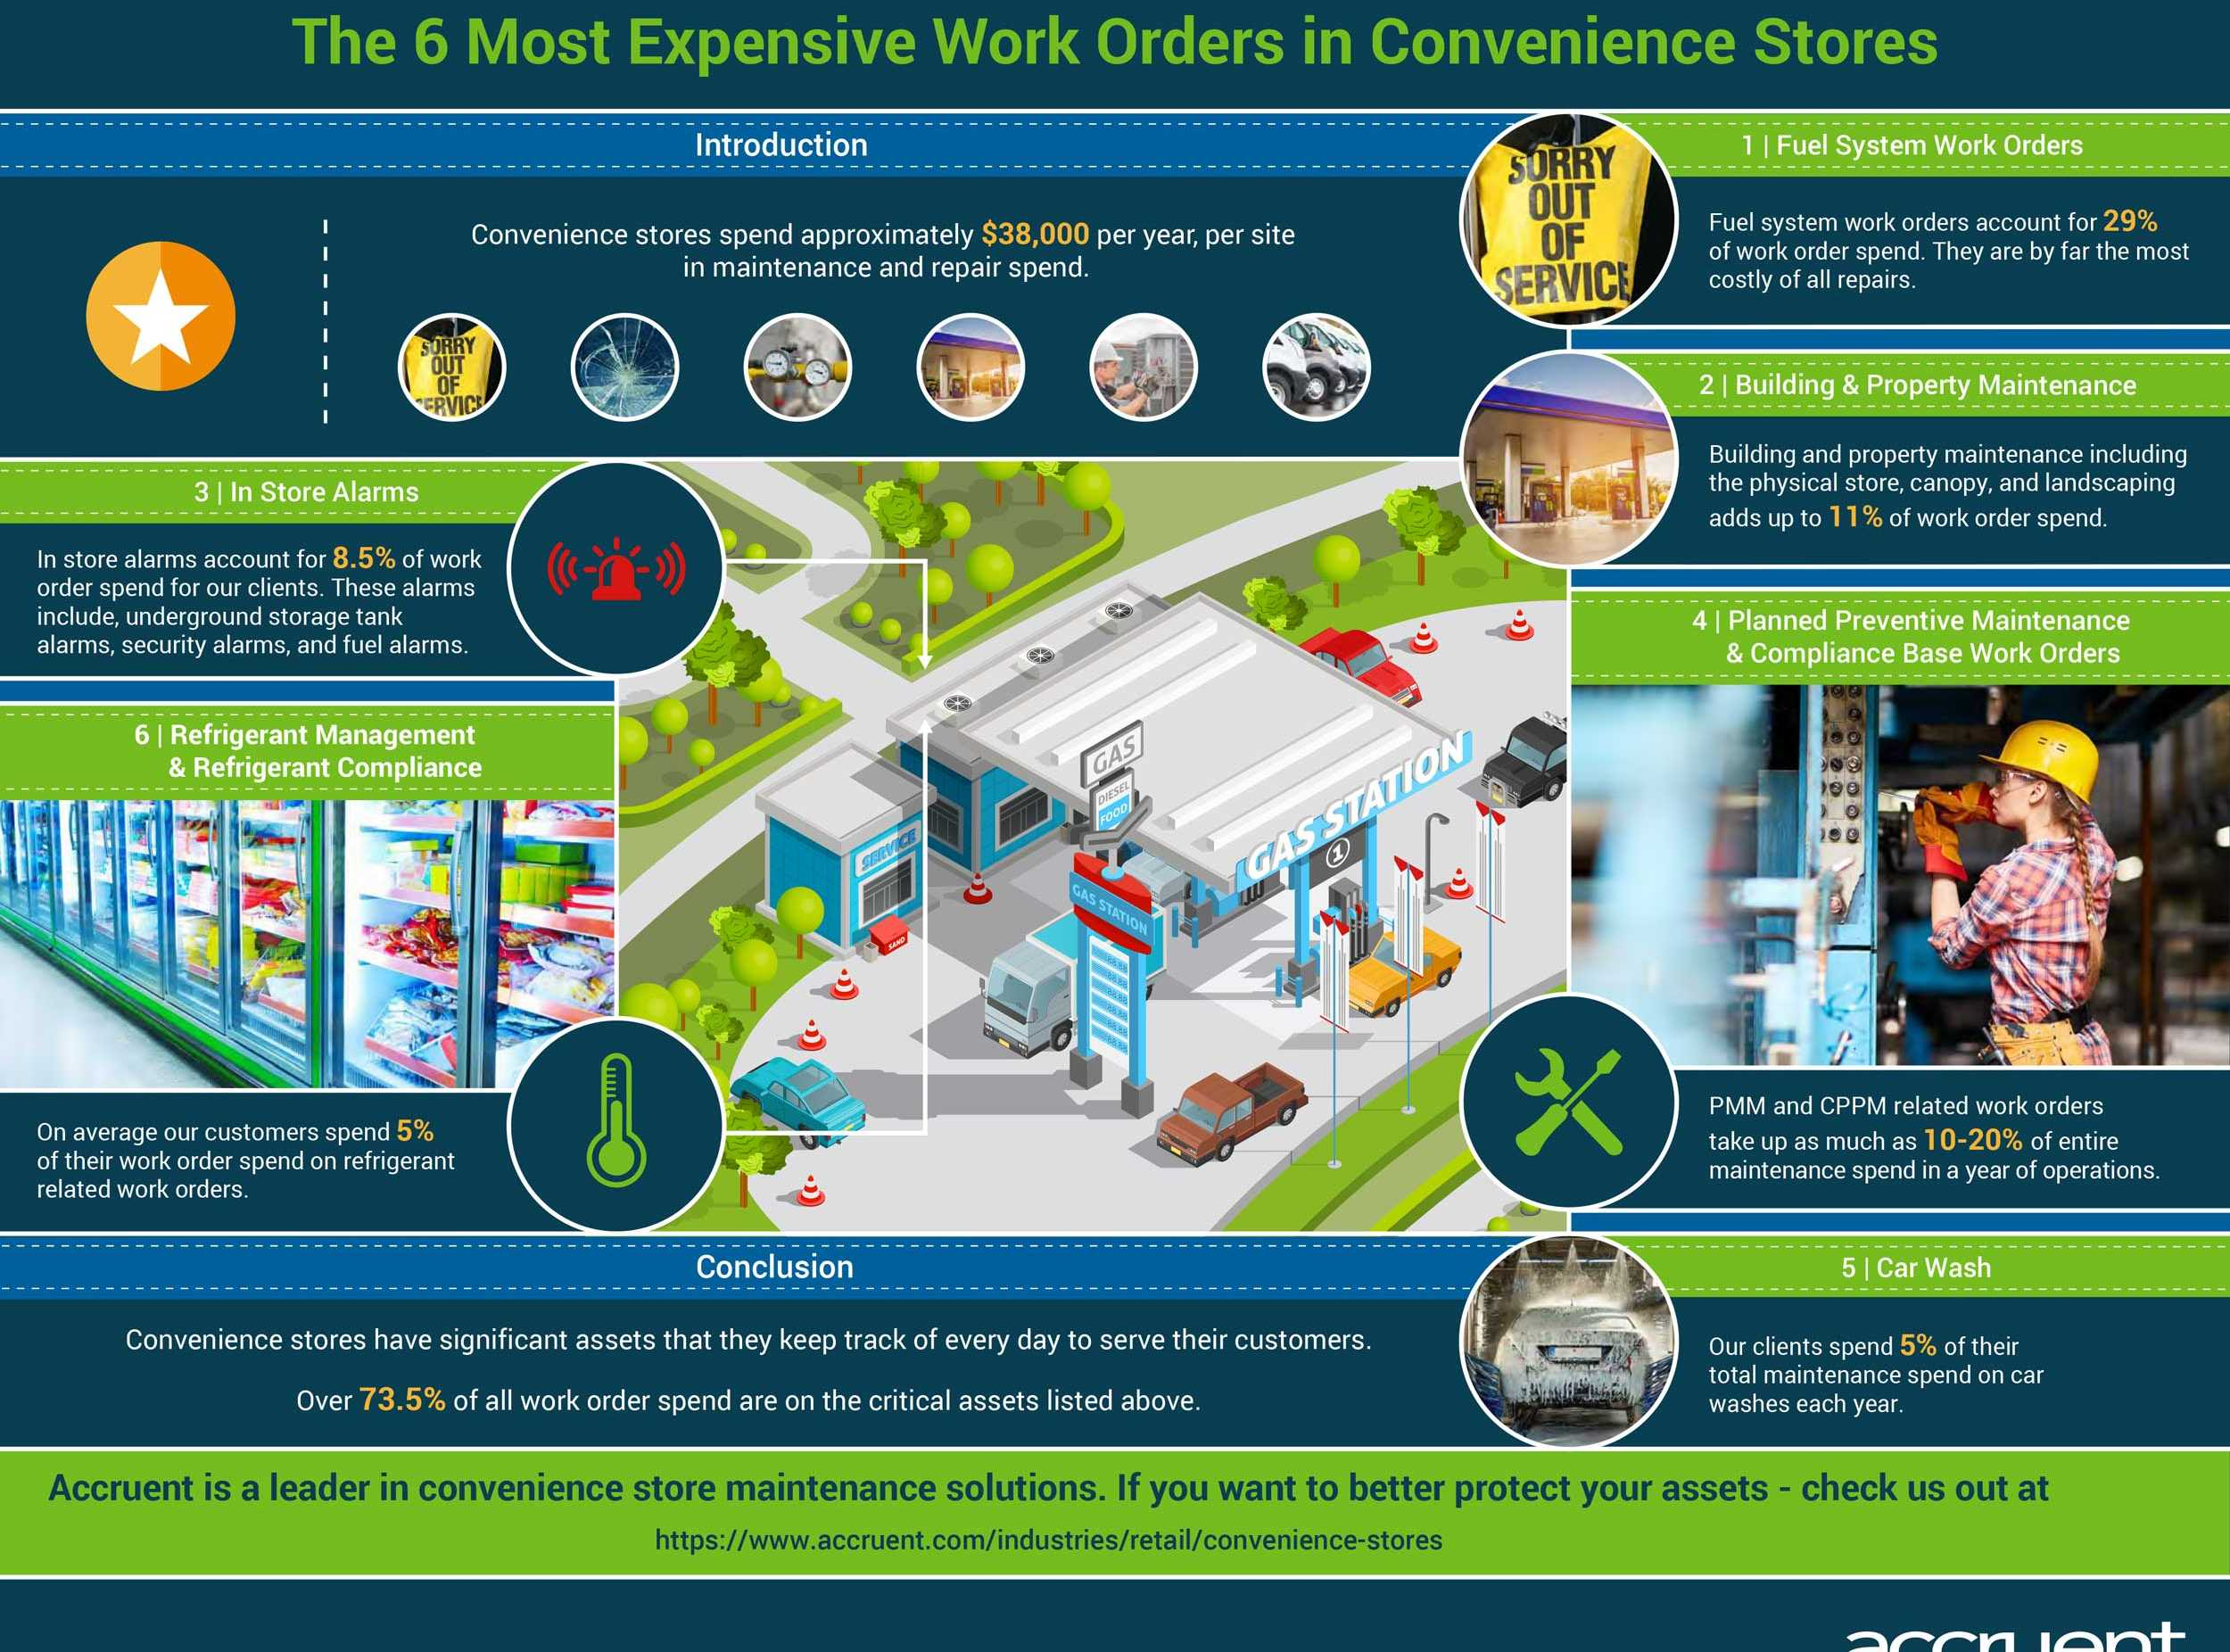 Accruent - Resources - Infographics - The 6 Most Expensive Work Orders in Convenience Stores - Hero